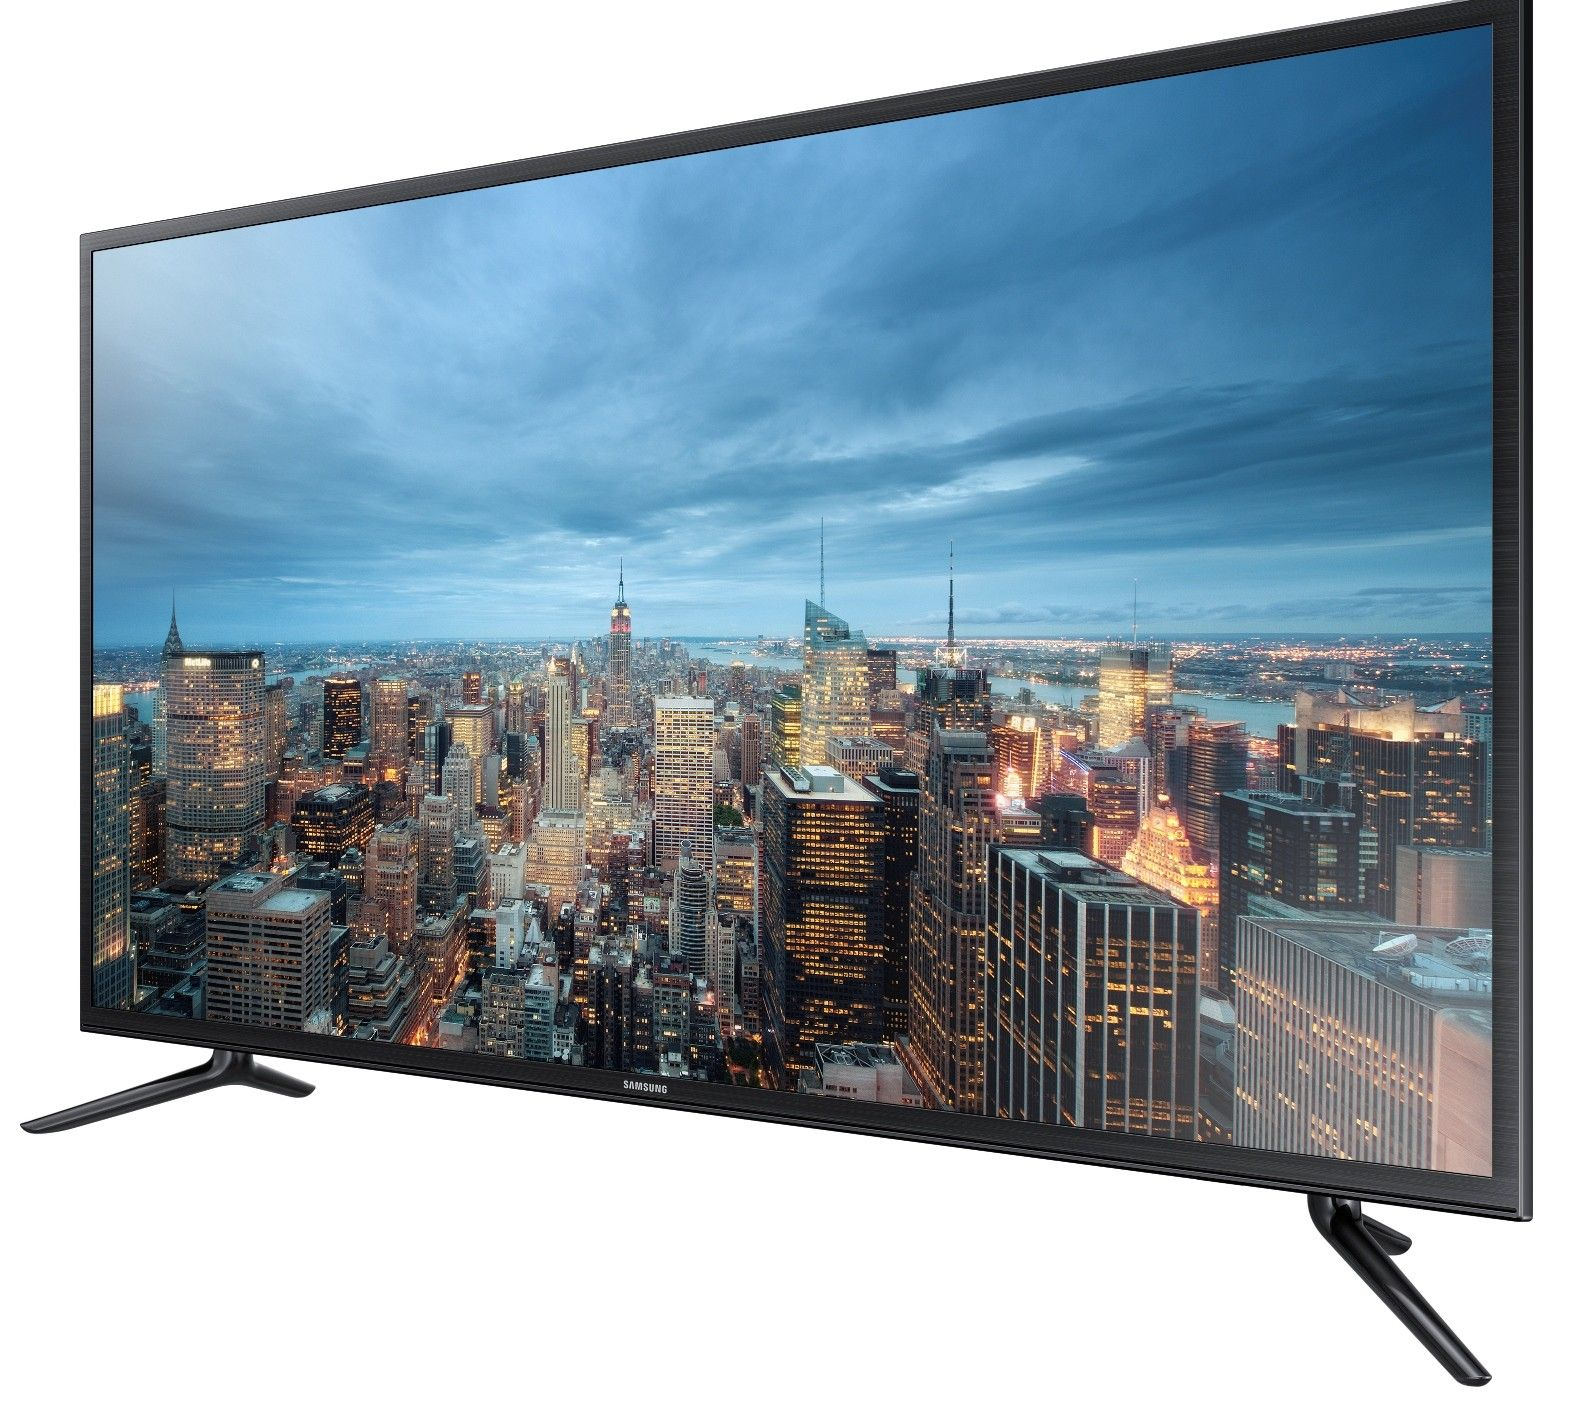 Samsung UN60JU7100F LED TV Driver for Windows Download